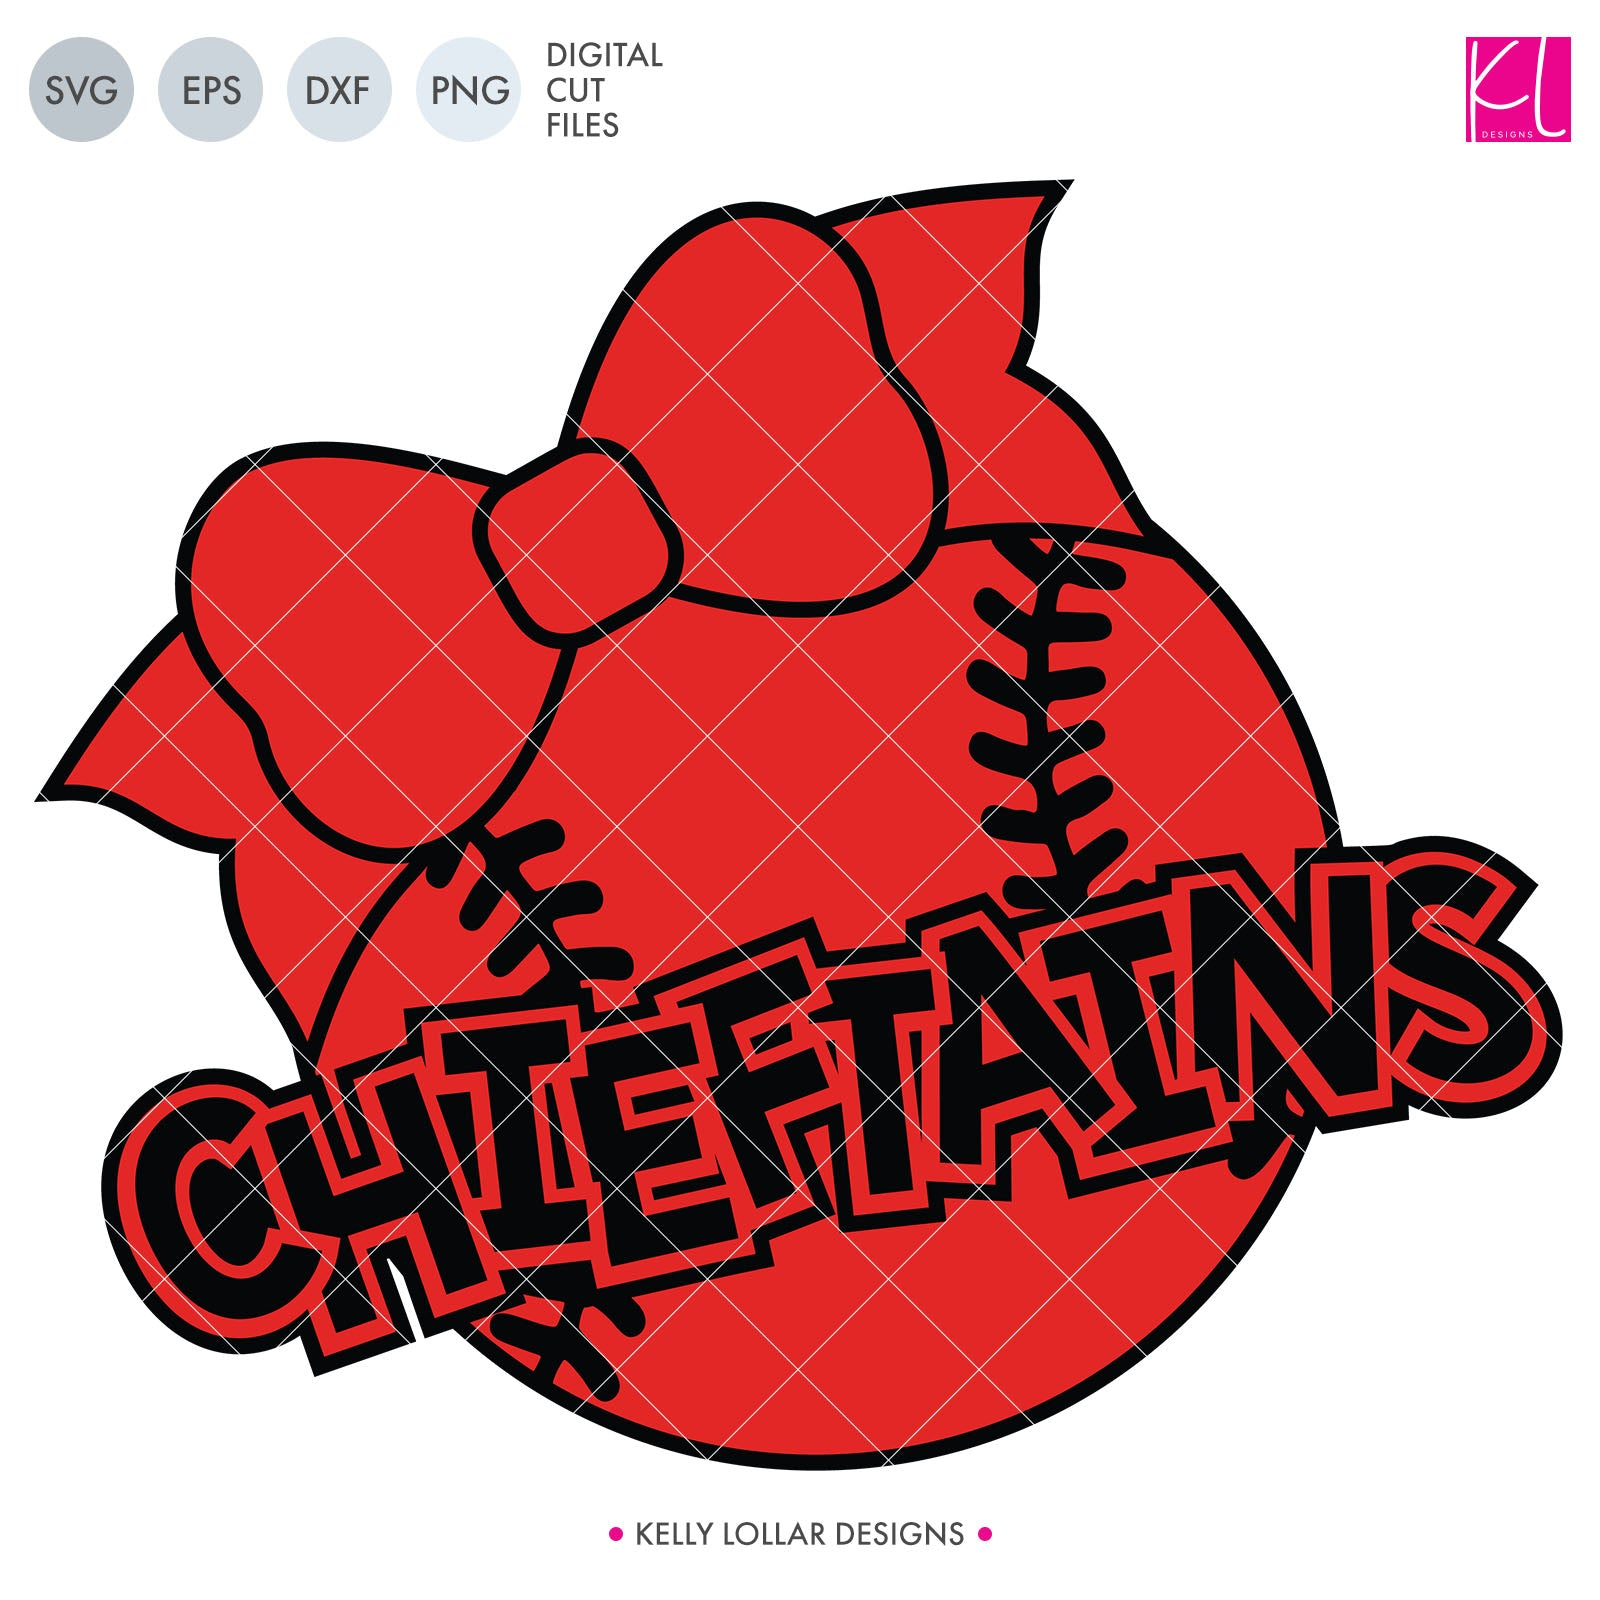 Chieftains Baseball & Softball with Bow | SVG DXF EPS PNG Cut Files Add a little cute to little brother or sister's game day with this adorable bow topped baseball and softball design! Easy to use and perfect for children's spirit shirts. SVG